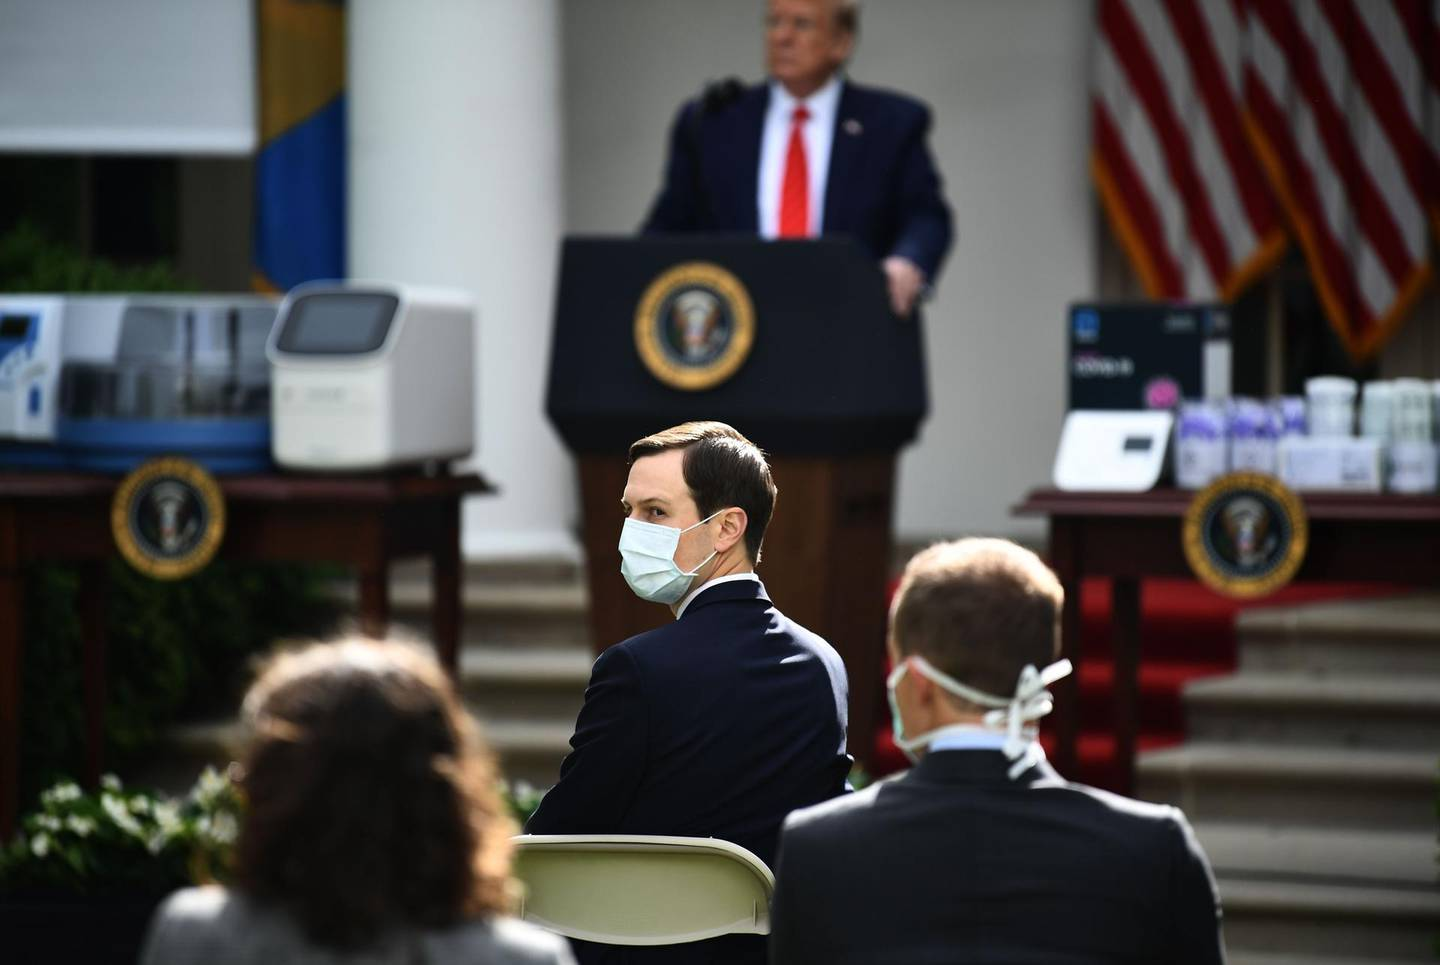 White House Senior Advisor and son-in-law Jared Kushner (C) looks on as US President Donald Trump holds a news conference on the novel coronavirus, COVID-19, in the Rose Garden of the White House in Washington, DC on May 11, 2020. / AFP / Brendan Smialowski